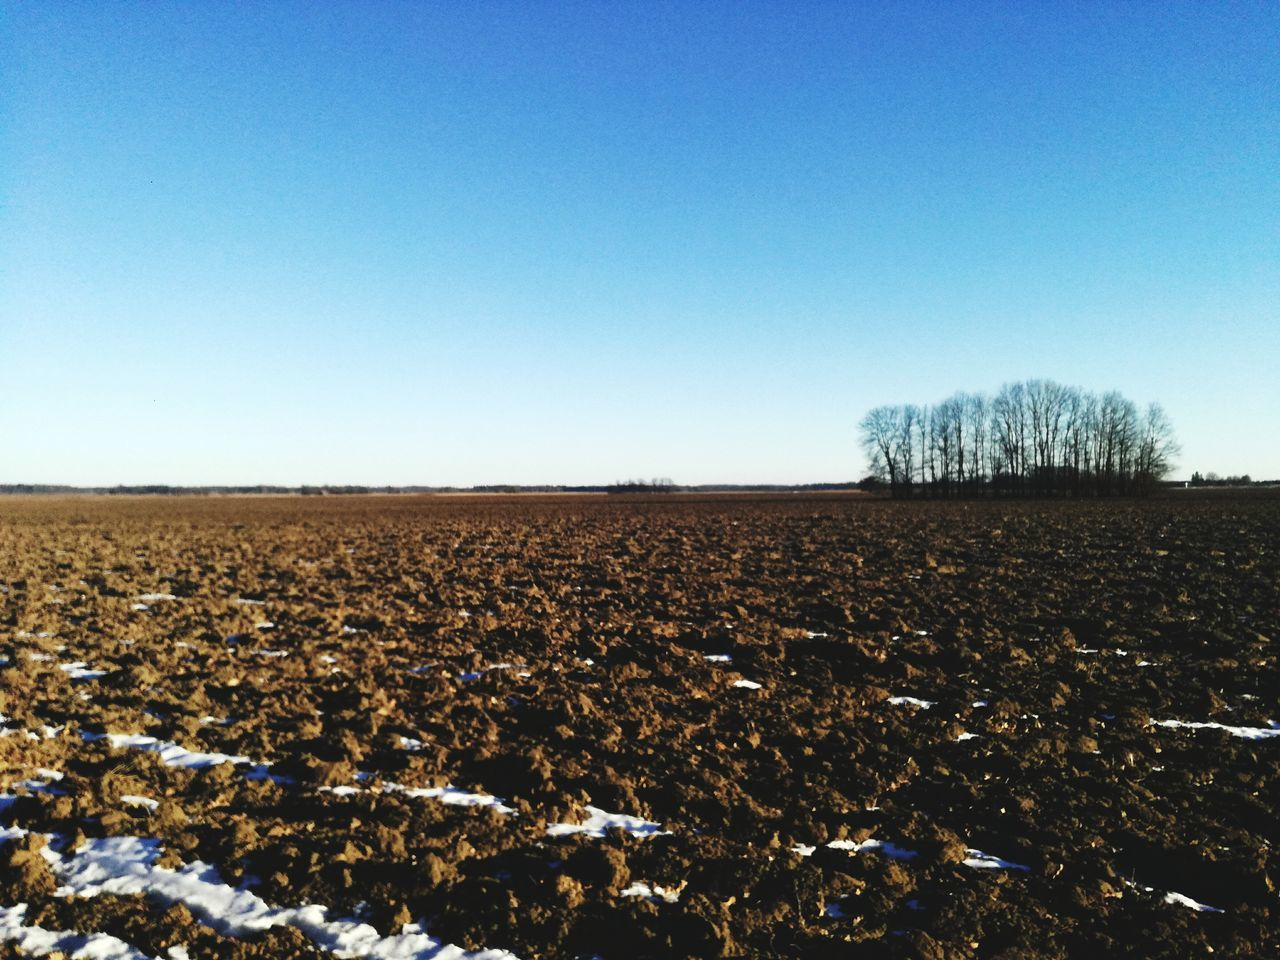 Farm Agriculture Clear Sky Growth Sky Plough No People Landscape Nature Rural Scene Outdoors Day Field Shiny Grassfield Winter Frosty Morning Beuty Of Nature Freshness Beauty In Nature Mess Mud Tree Nature Brown